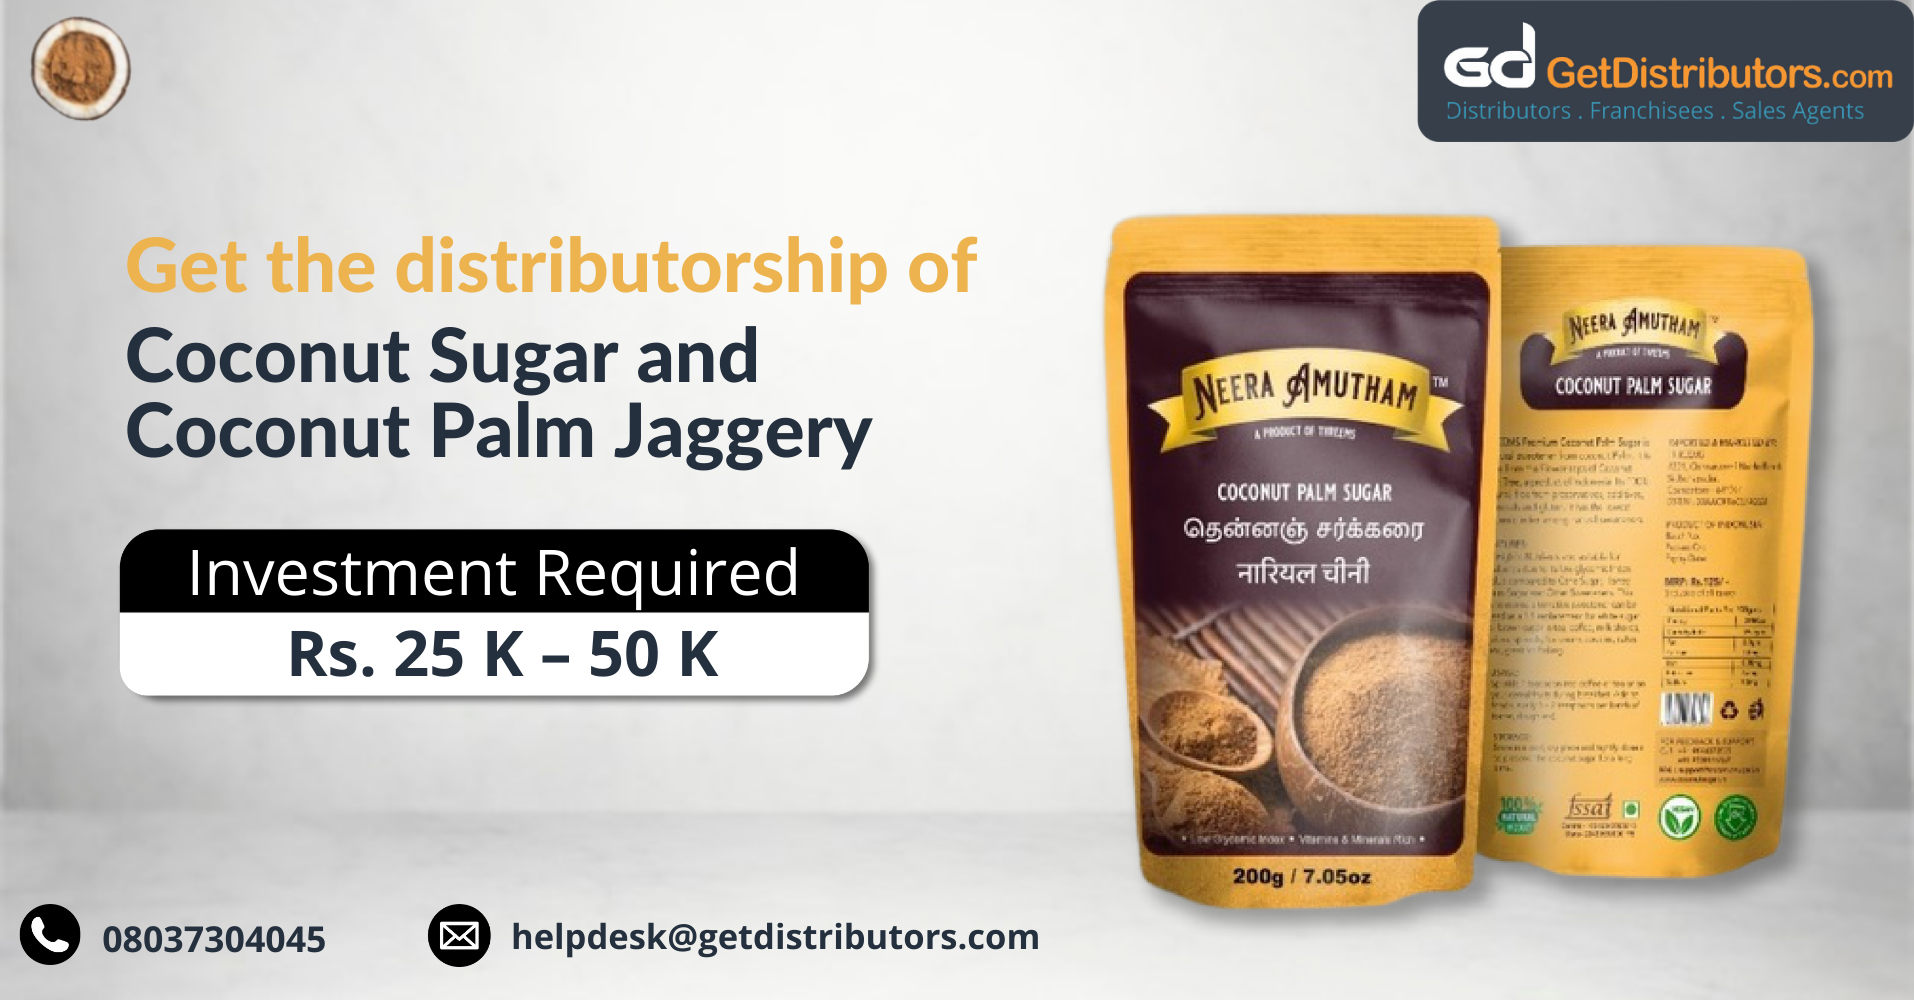 Top-class Coconut Sugar, and Coconut Palm Jaggery for distribution